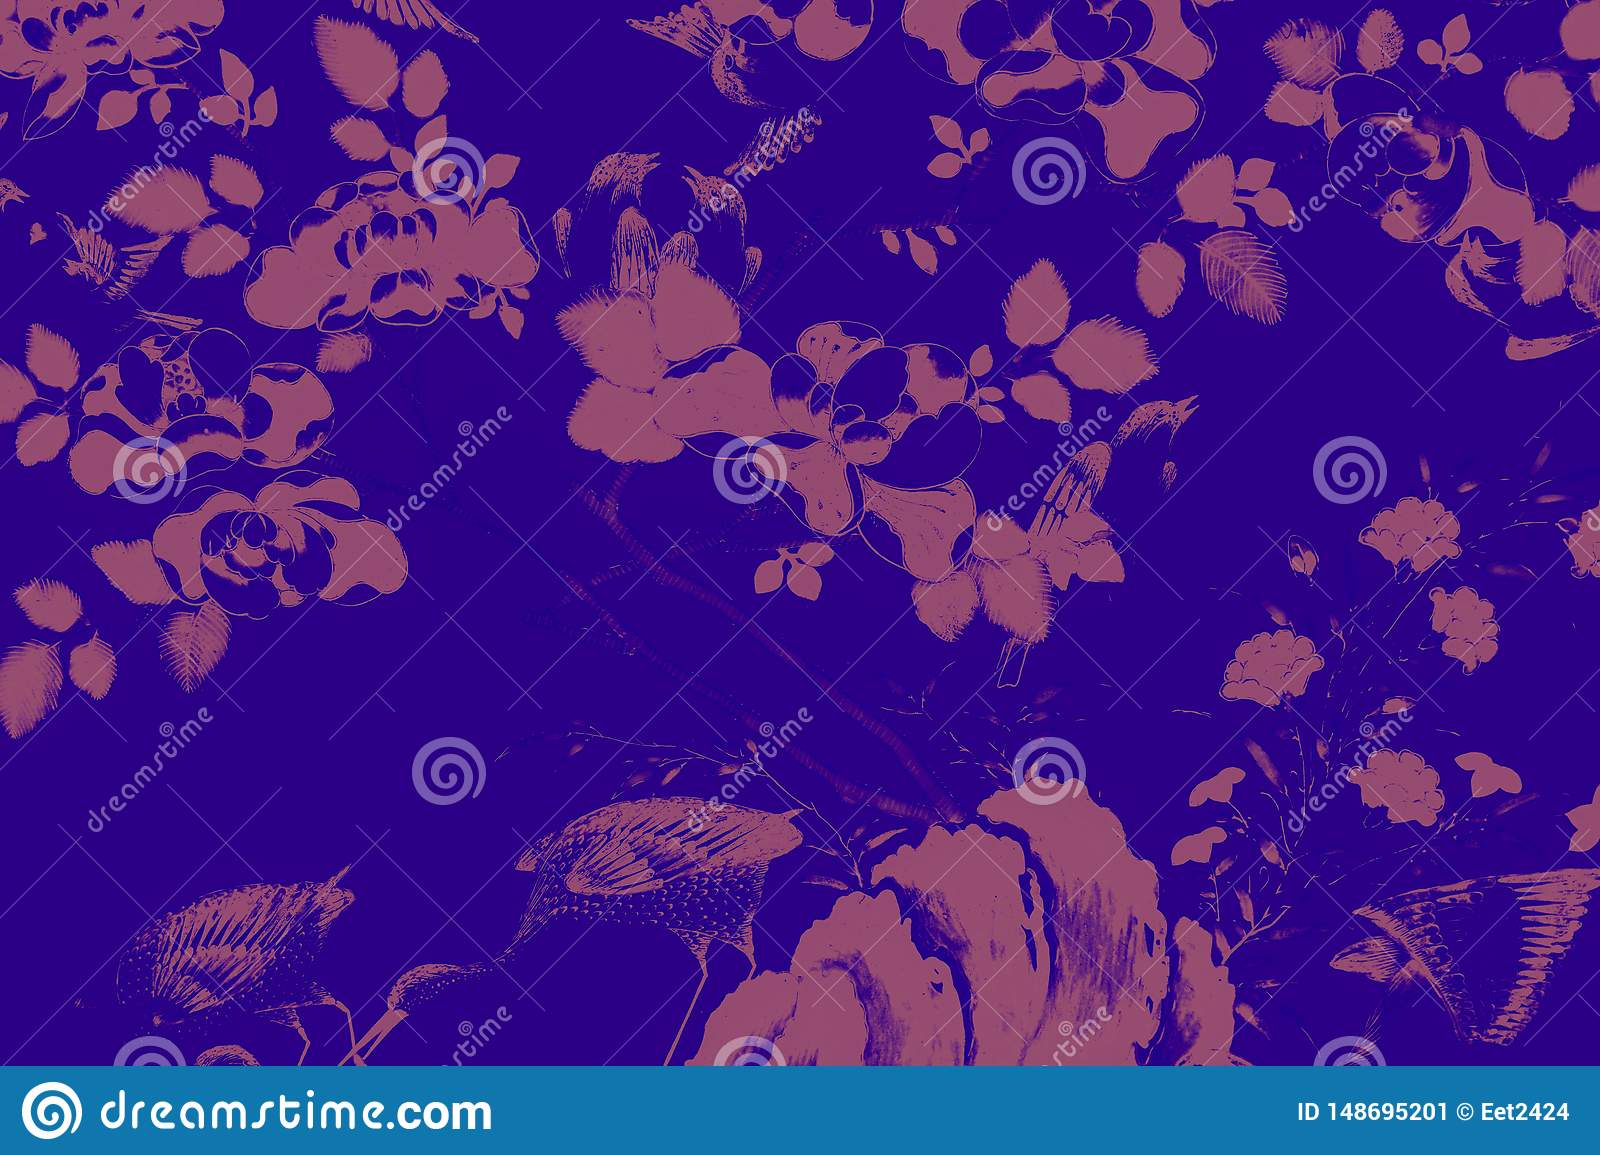 Beautiful tree bird and flowers art paintings colorful pink purple green orange white and black pattern background and wallpaper